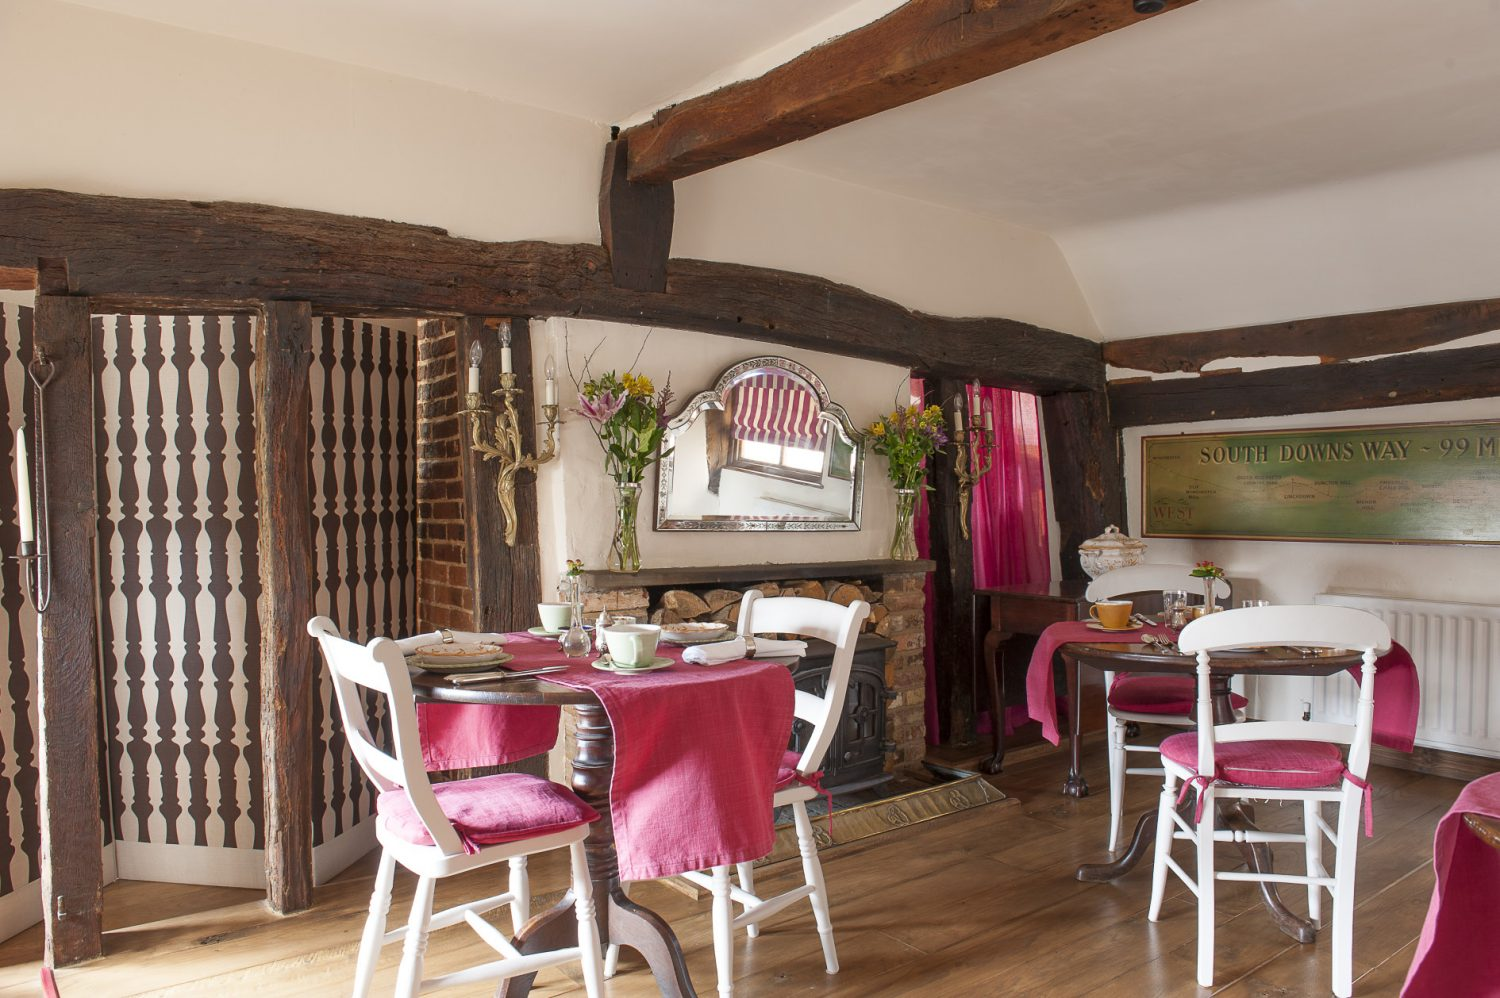 Matthew sources fresh, local ingredients to serve visitors in the cosy dining room during winter and on the open air patio in the summer months